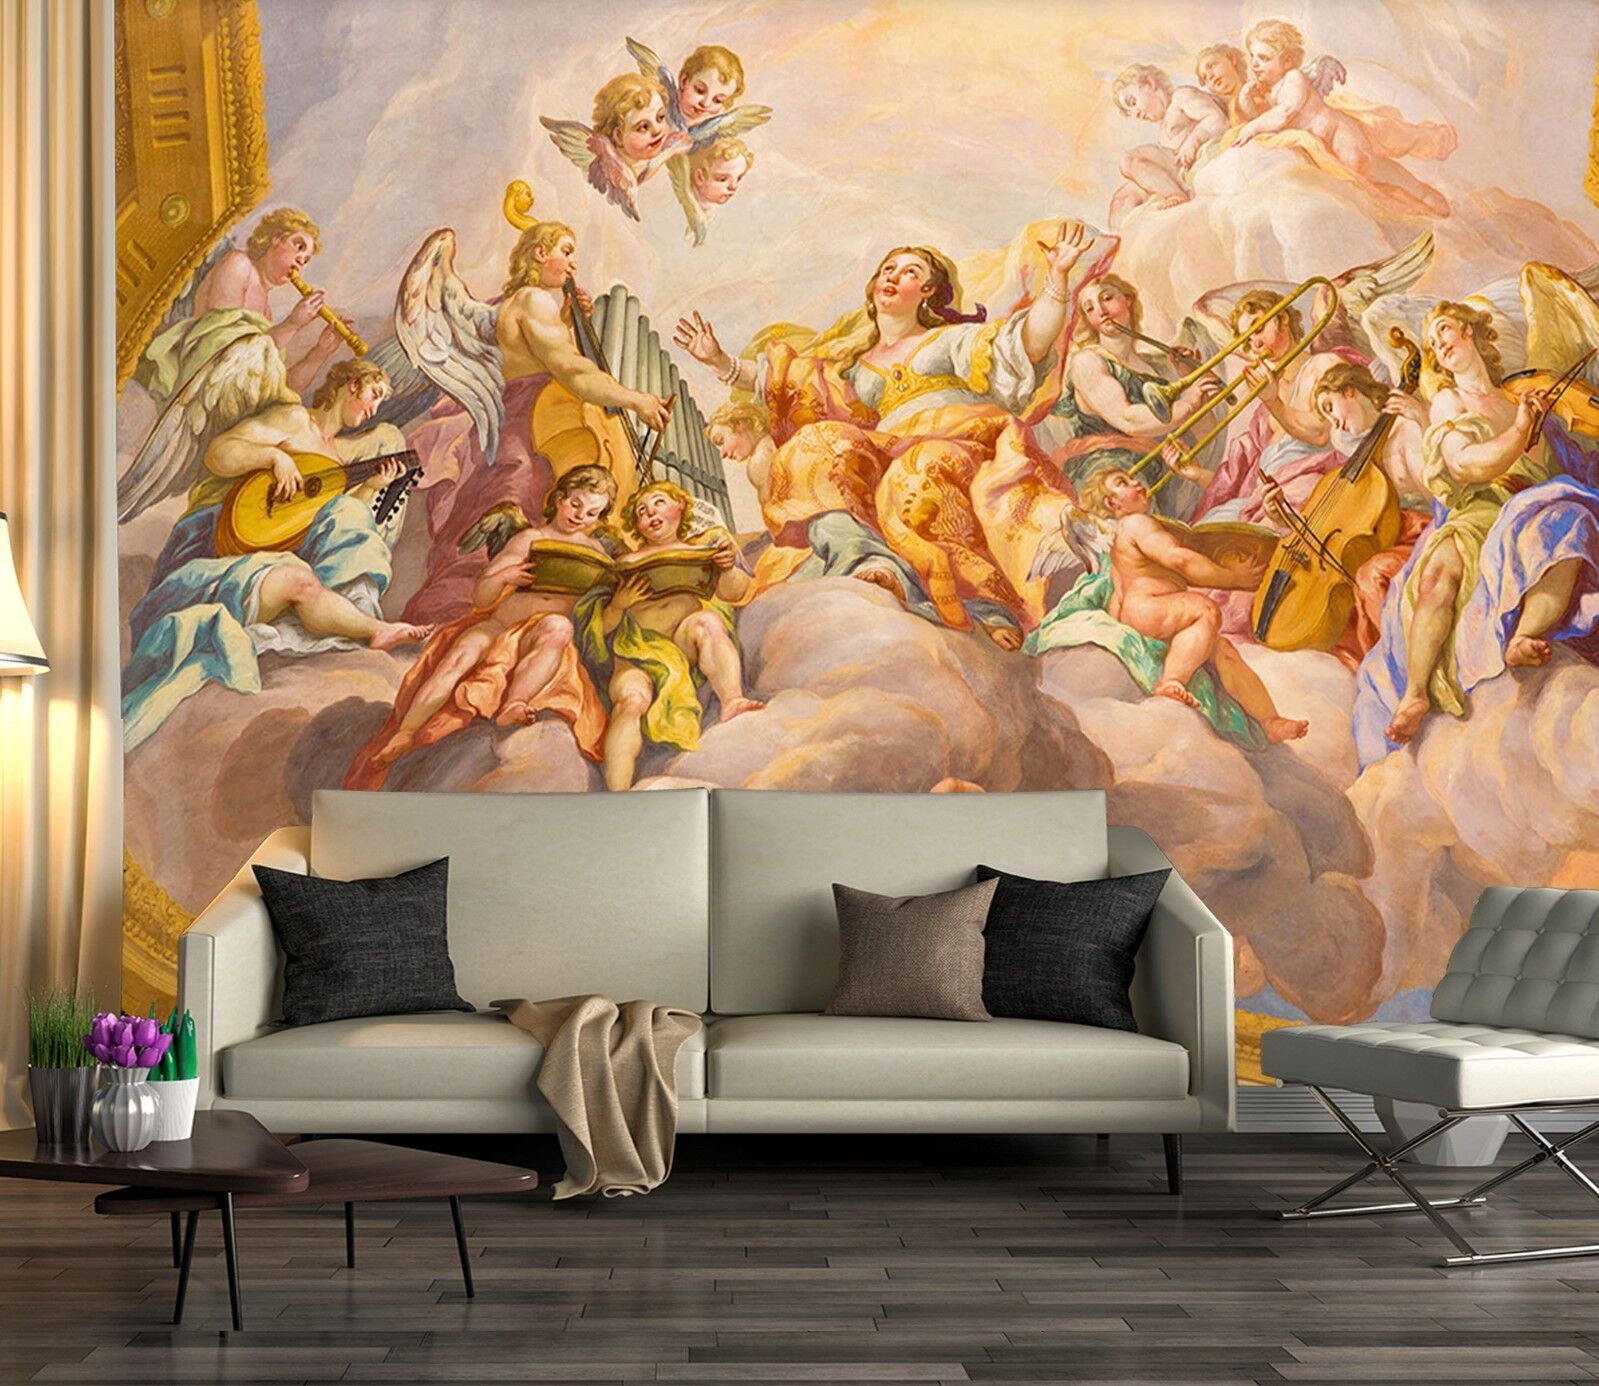 3D Religiou Figure Painting 6 Wall Paper Wall Print Decal Wall Deco Indoor Mural